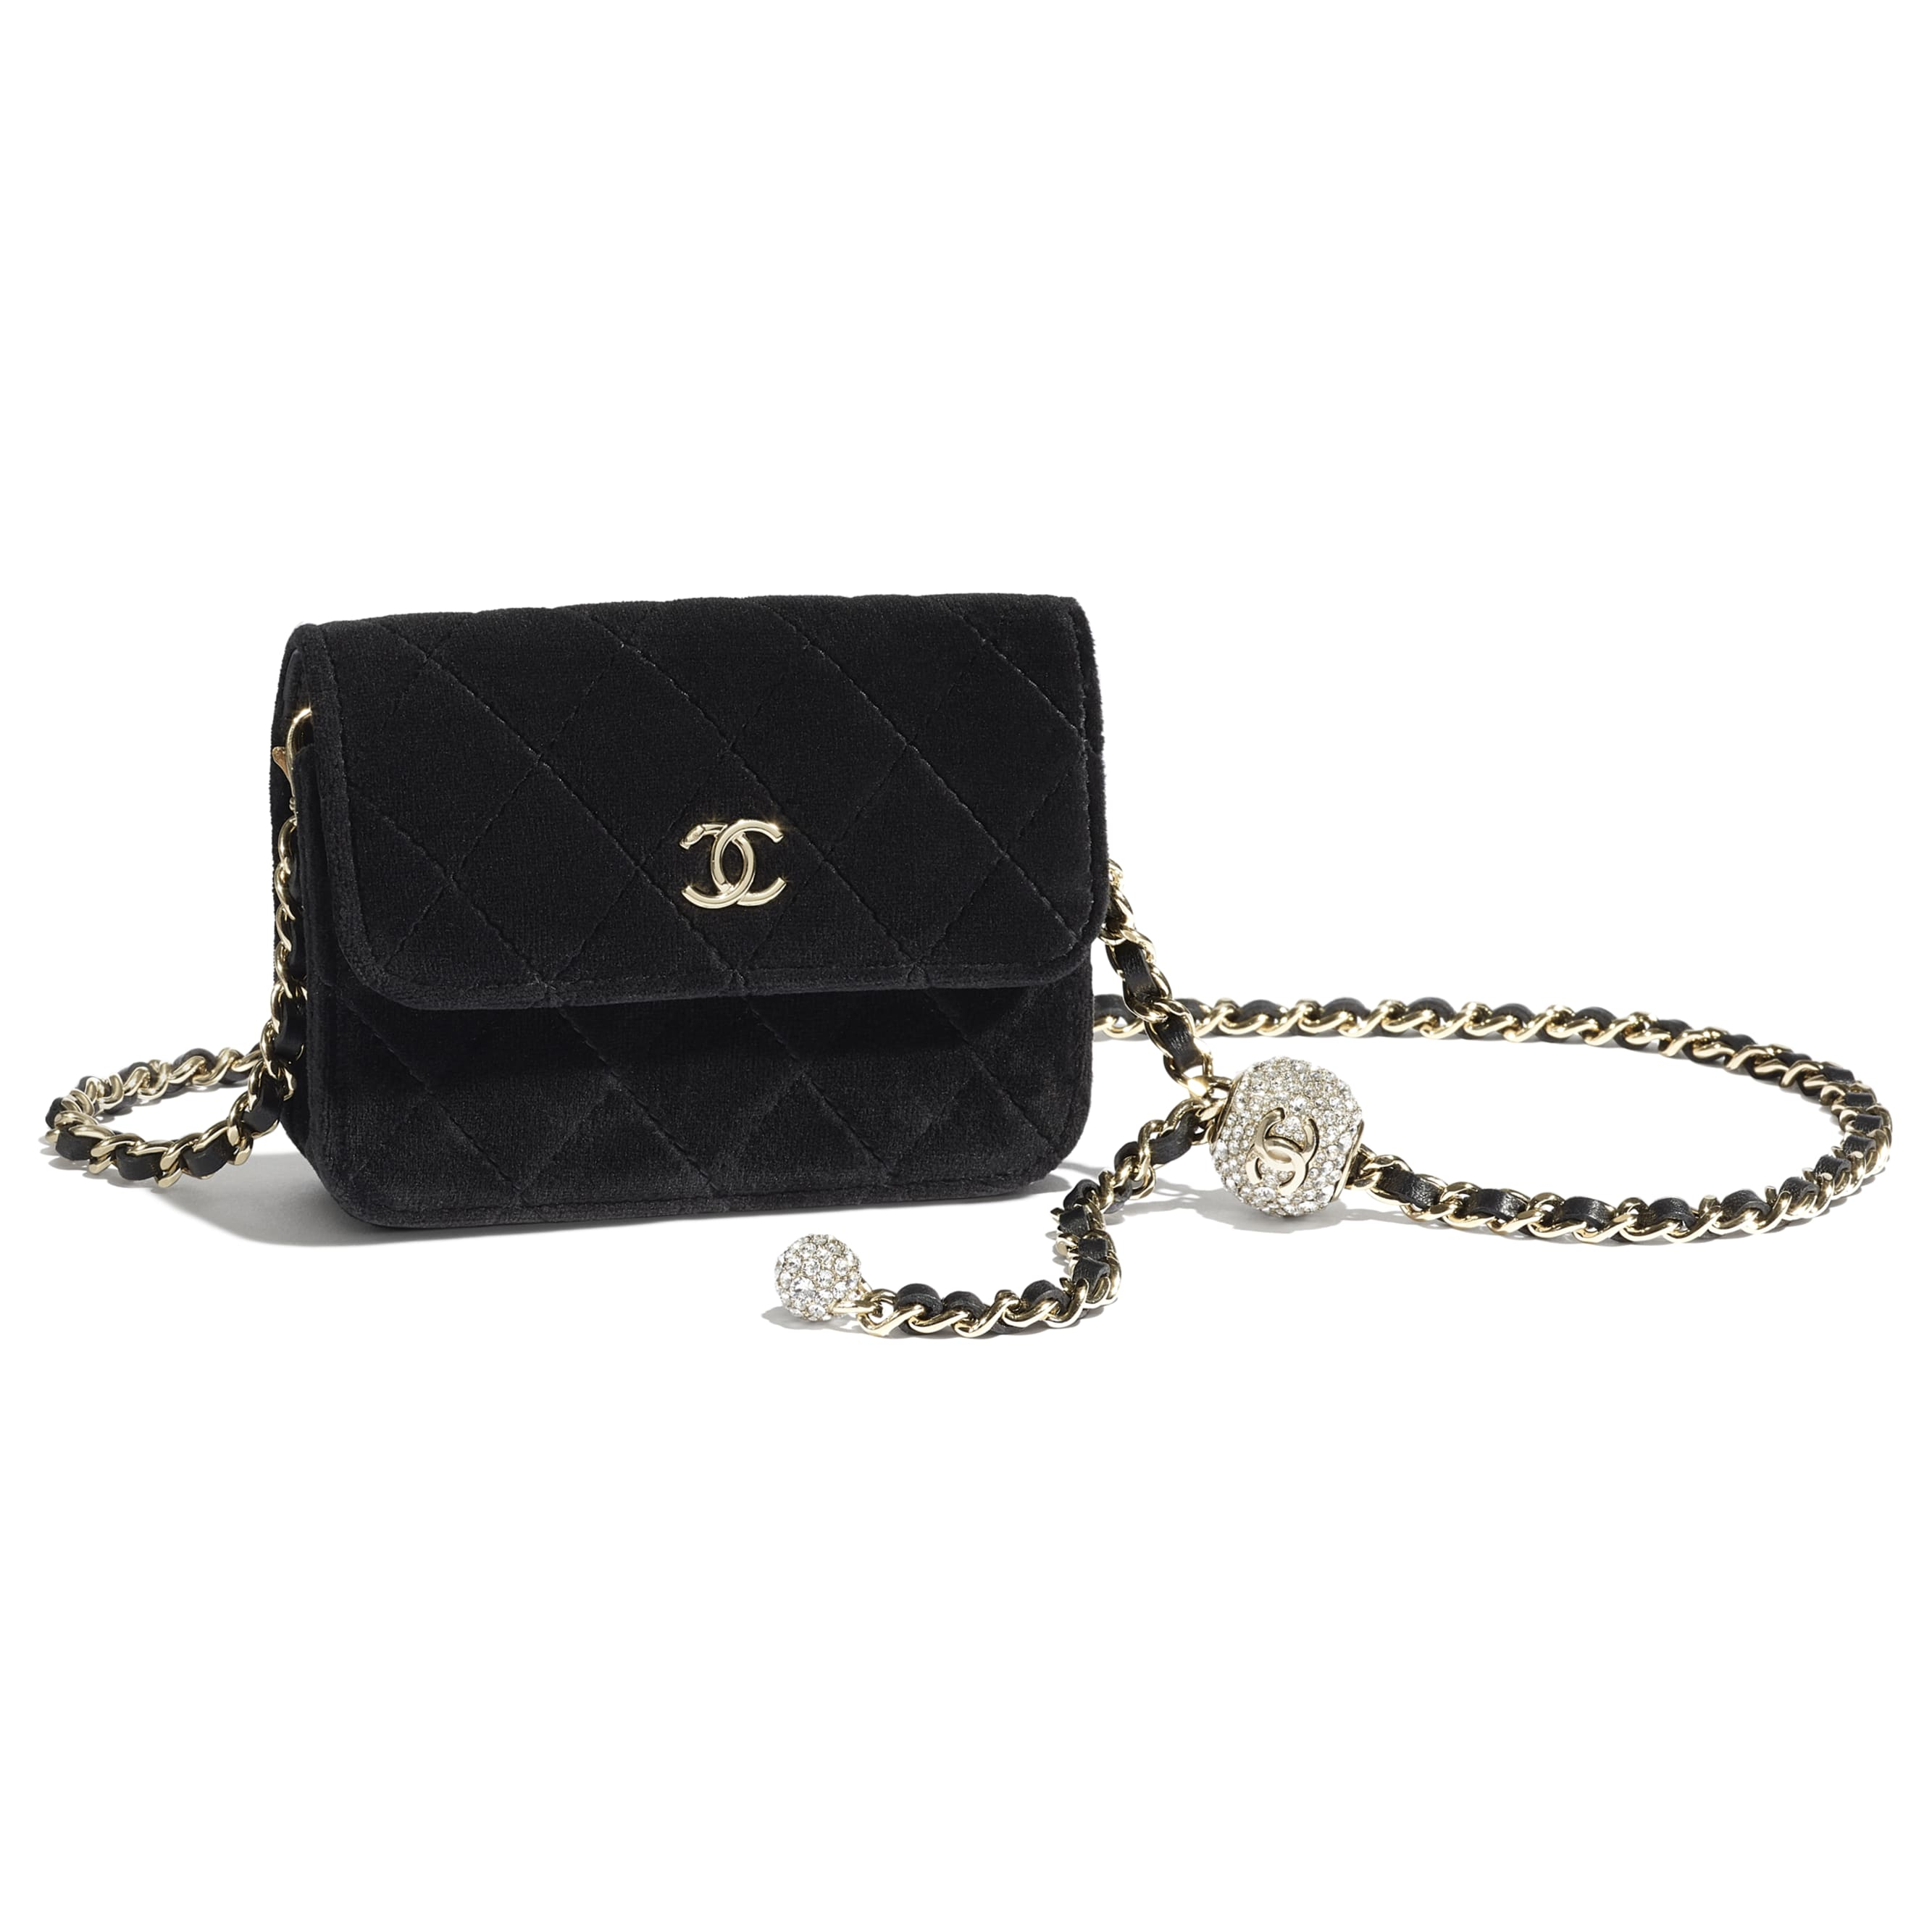 Clutch With Chain - Black - Velvet, Diamanté & Silver-Tone Metal - CHANEL - Other view - see standard sized version